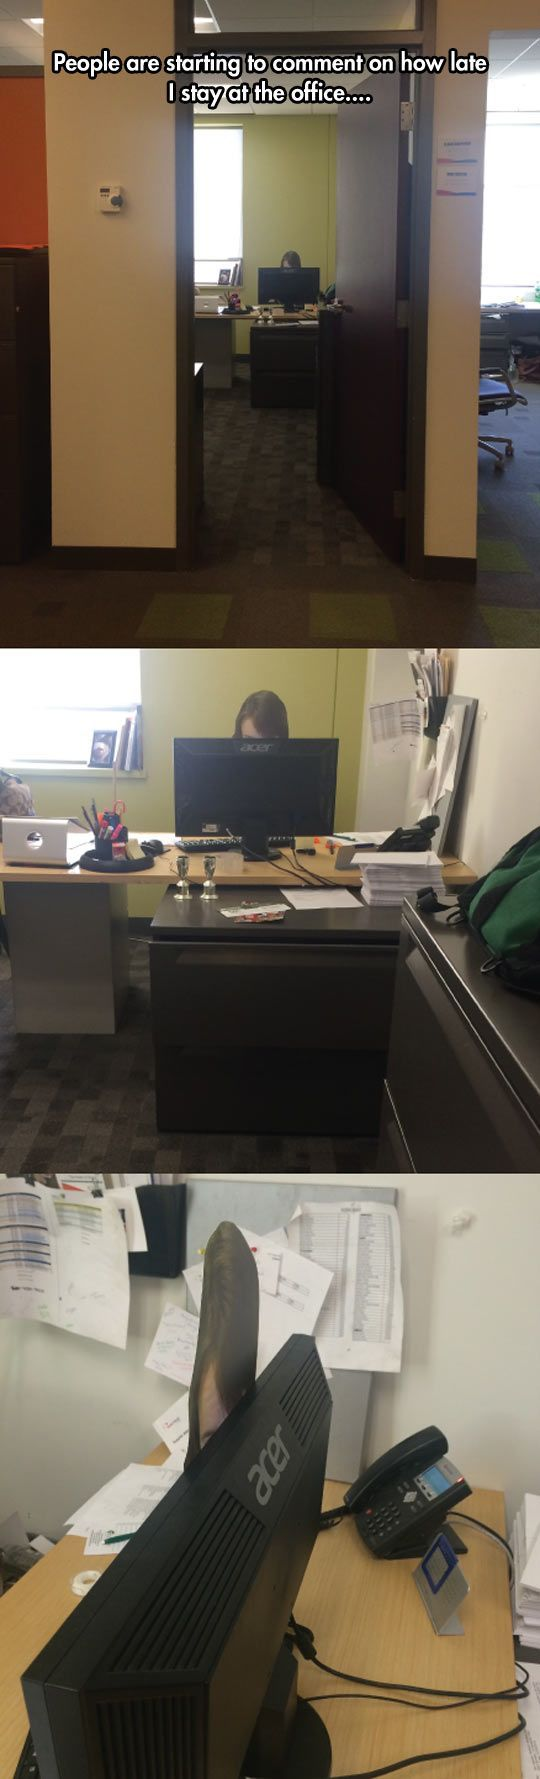 I Need To Do This In My Office - From Top 100 Funny Need pics, photos and memes. - SillyCool